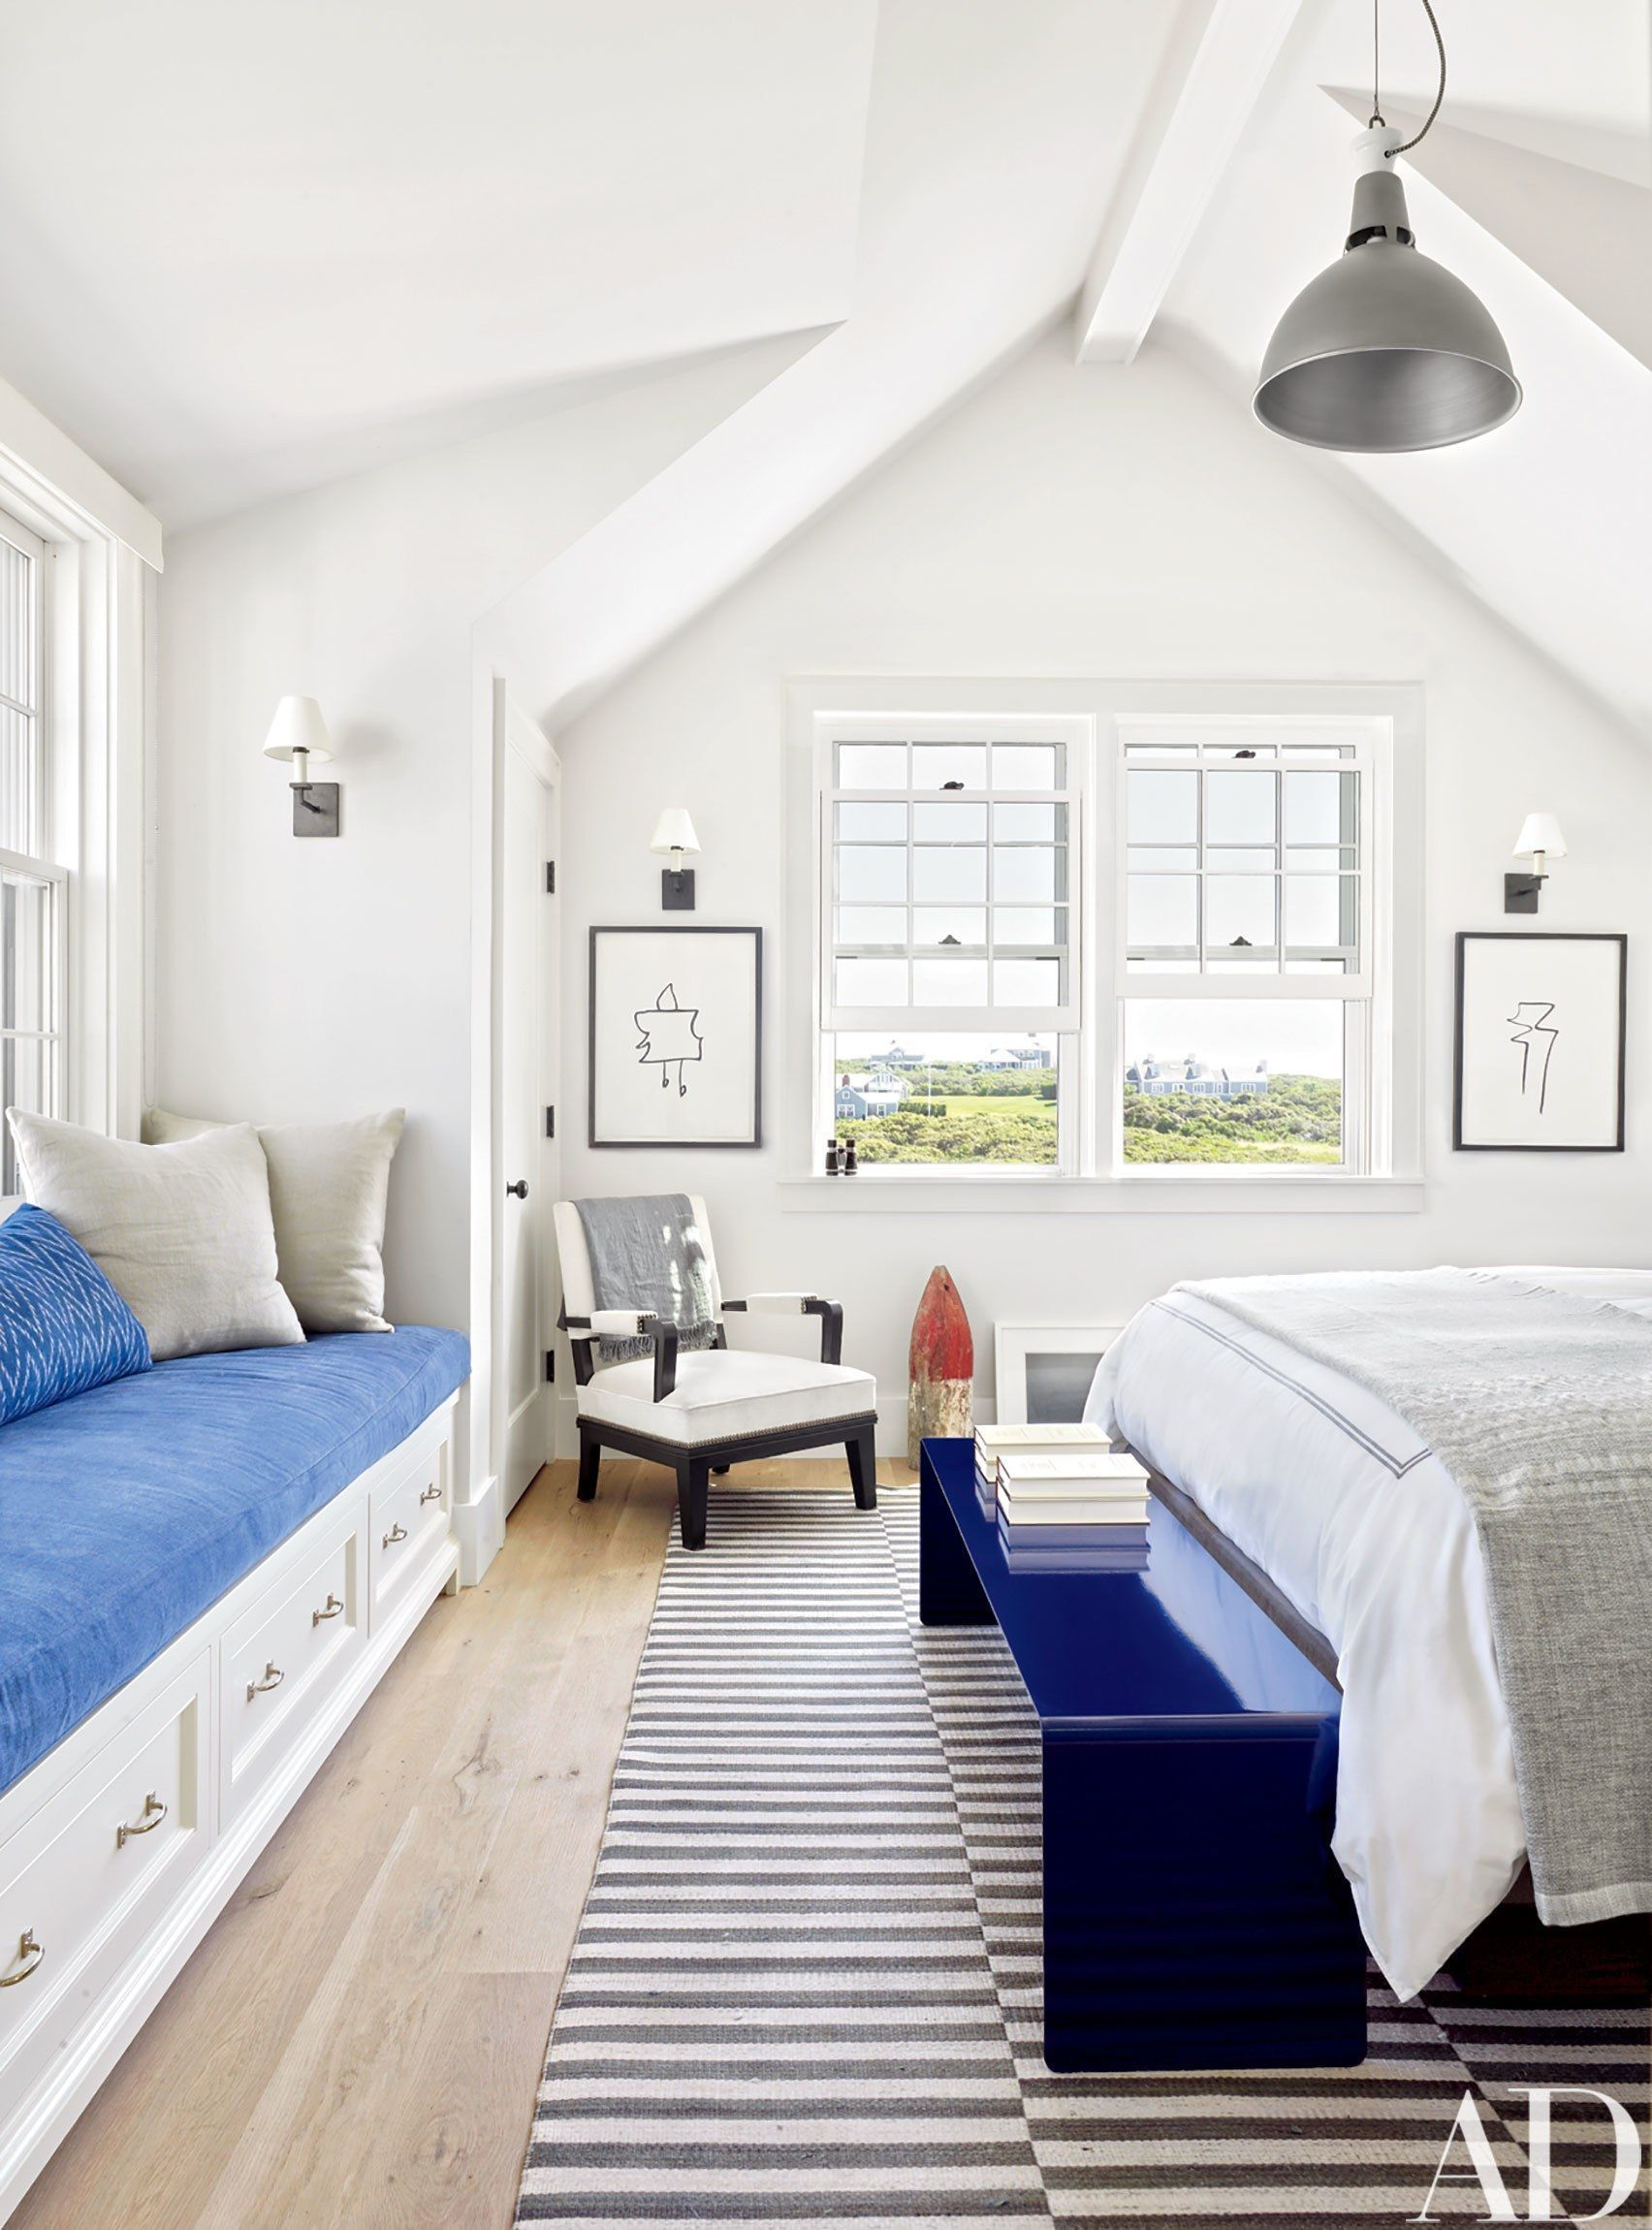 Victoria Hagens Classic Nantucket Home Photos - Architectural Digest